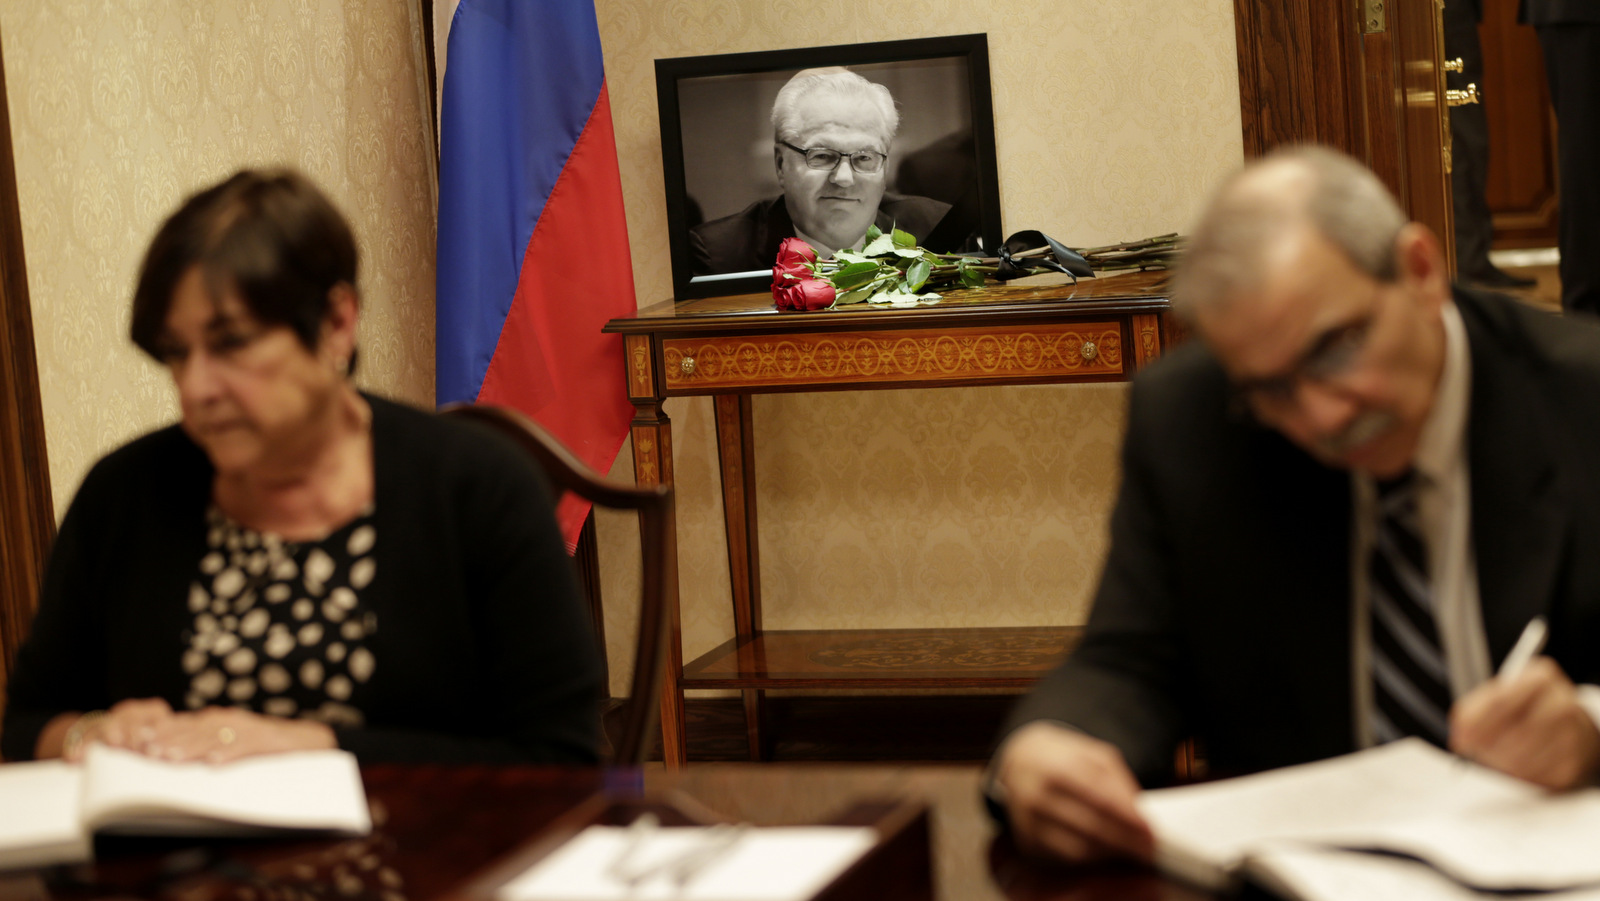 A picture of Vitaly Churkin, Russia's ambassador to the United Nations, is displayed while people sign condolences books at the Russian Mission to the U.N. in New York, Tuesday, Feb. 21, 2017. The city medical examiner was expected to perform an autopsy Tuesday on Russia's ambassador to the U.N., who died a day earlier after falling ill at his office at Russia's U.N. mission. (AP/Seth Wenig)